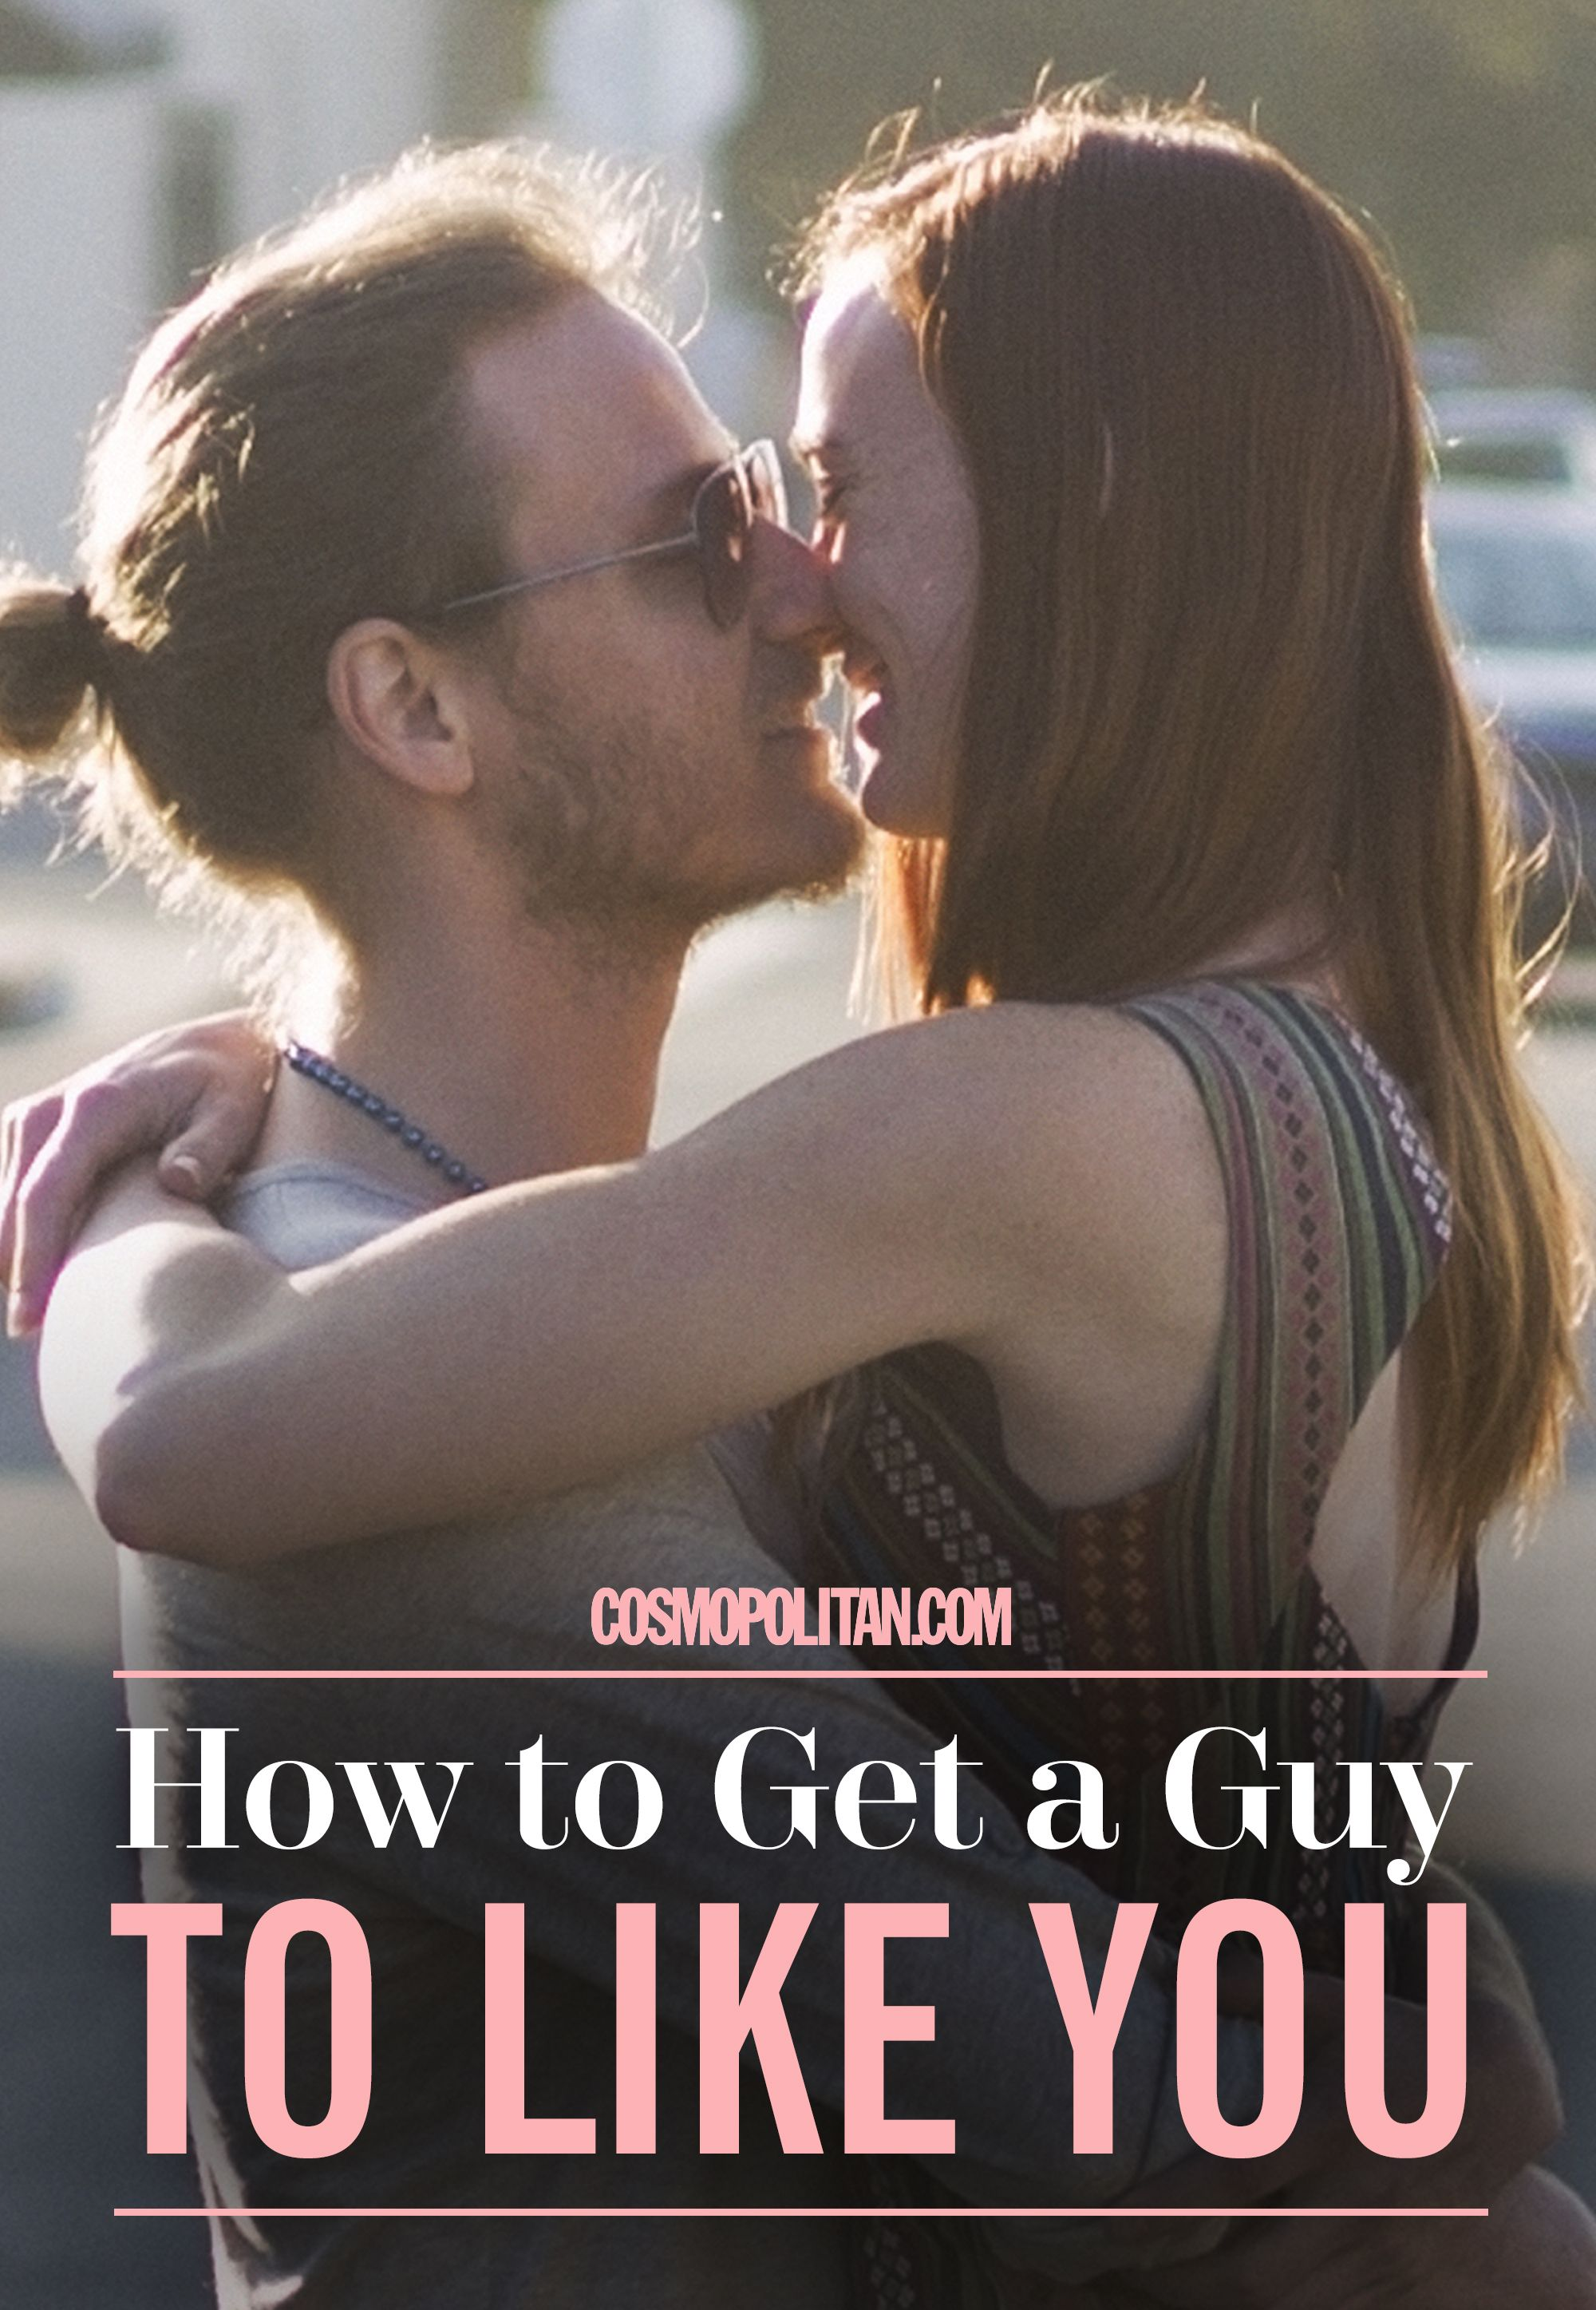 Tips on hooking up with a guy